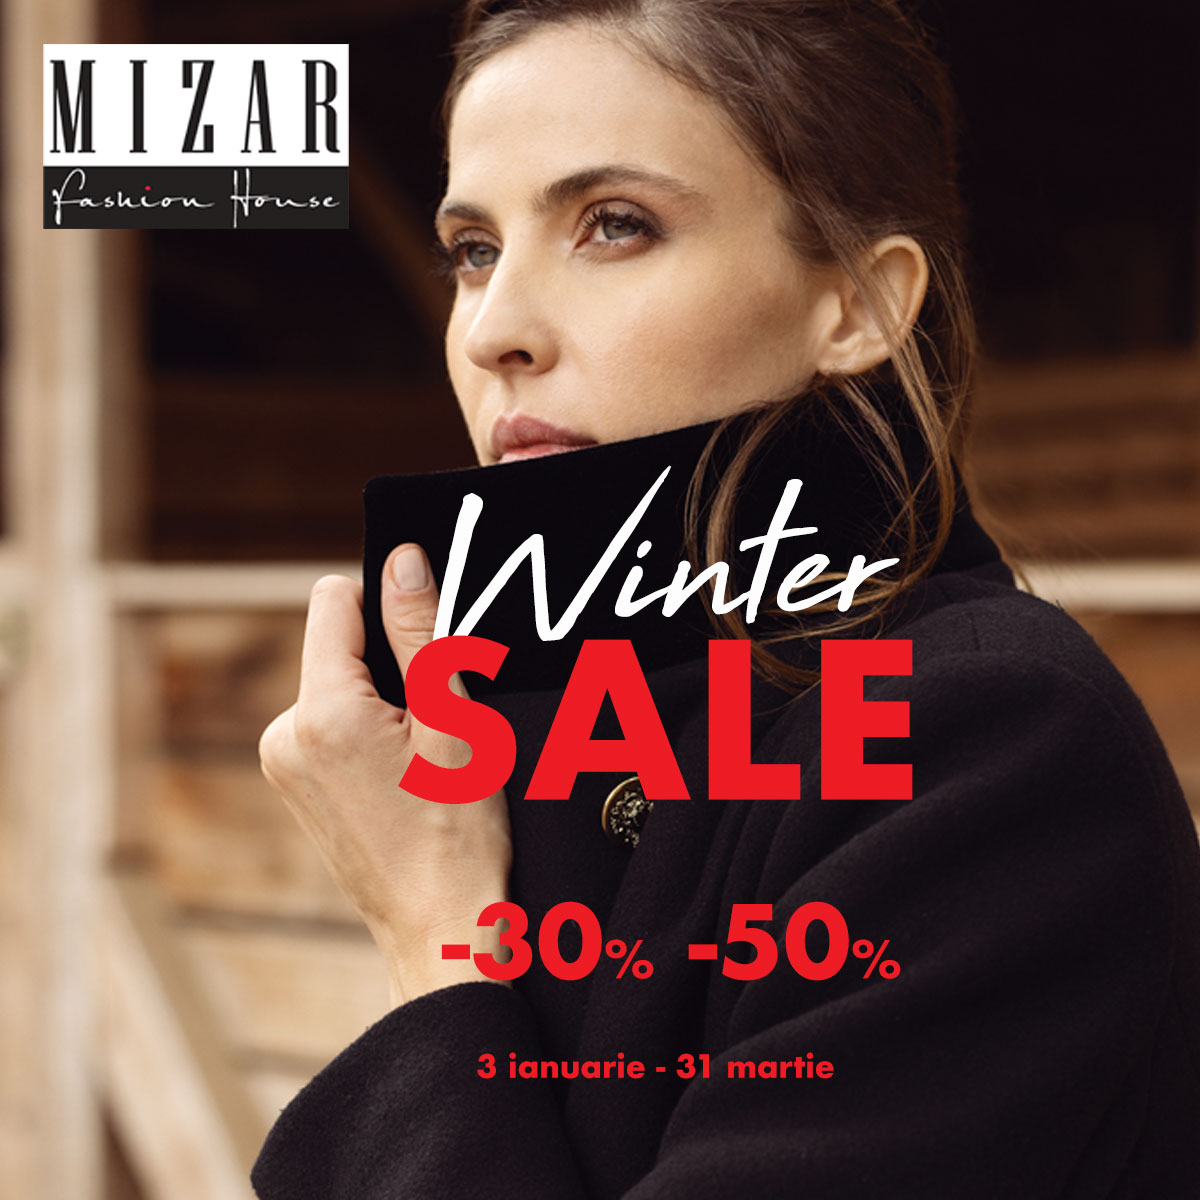 Winter Sale la Mizar